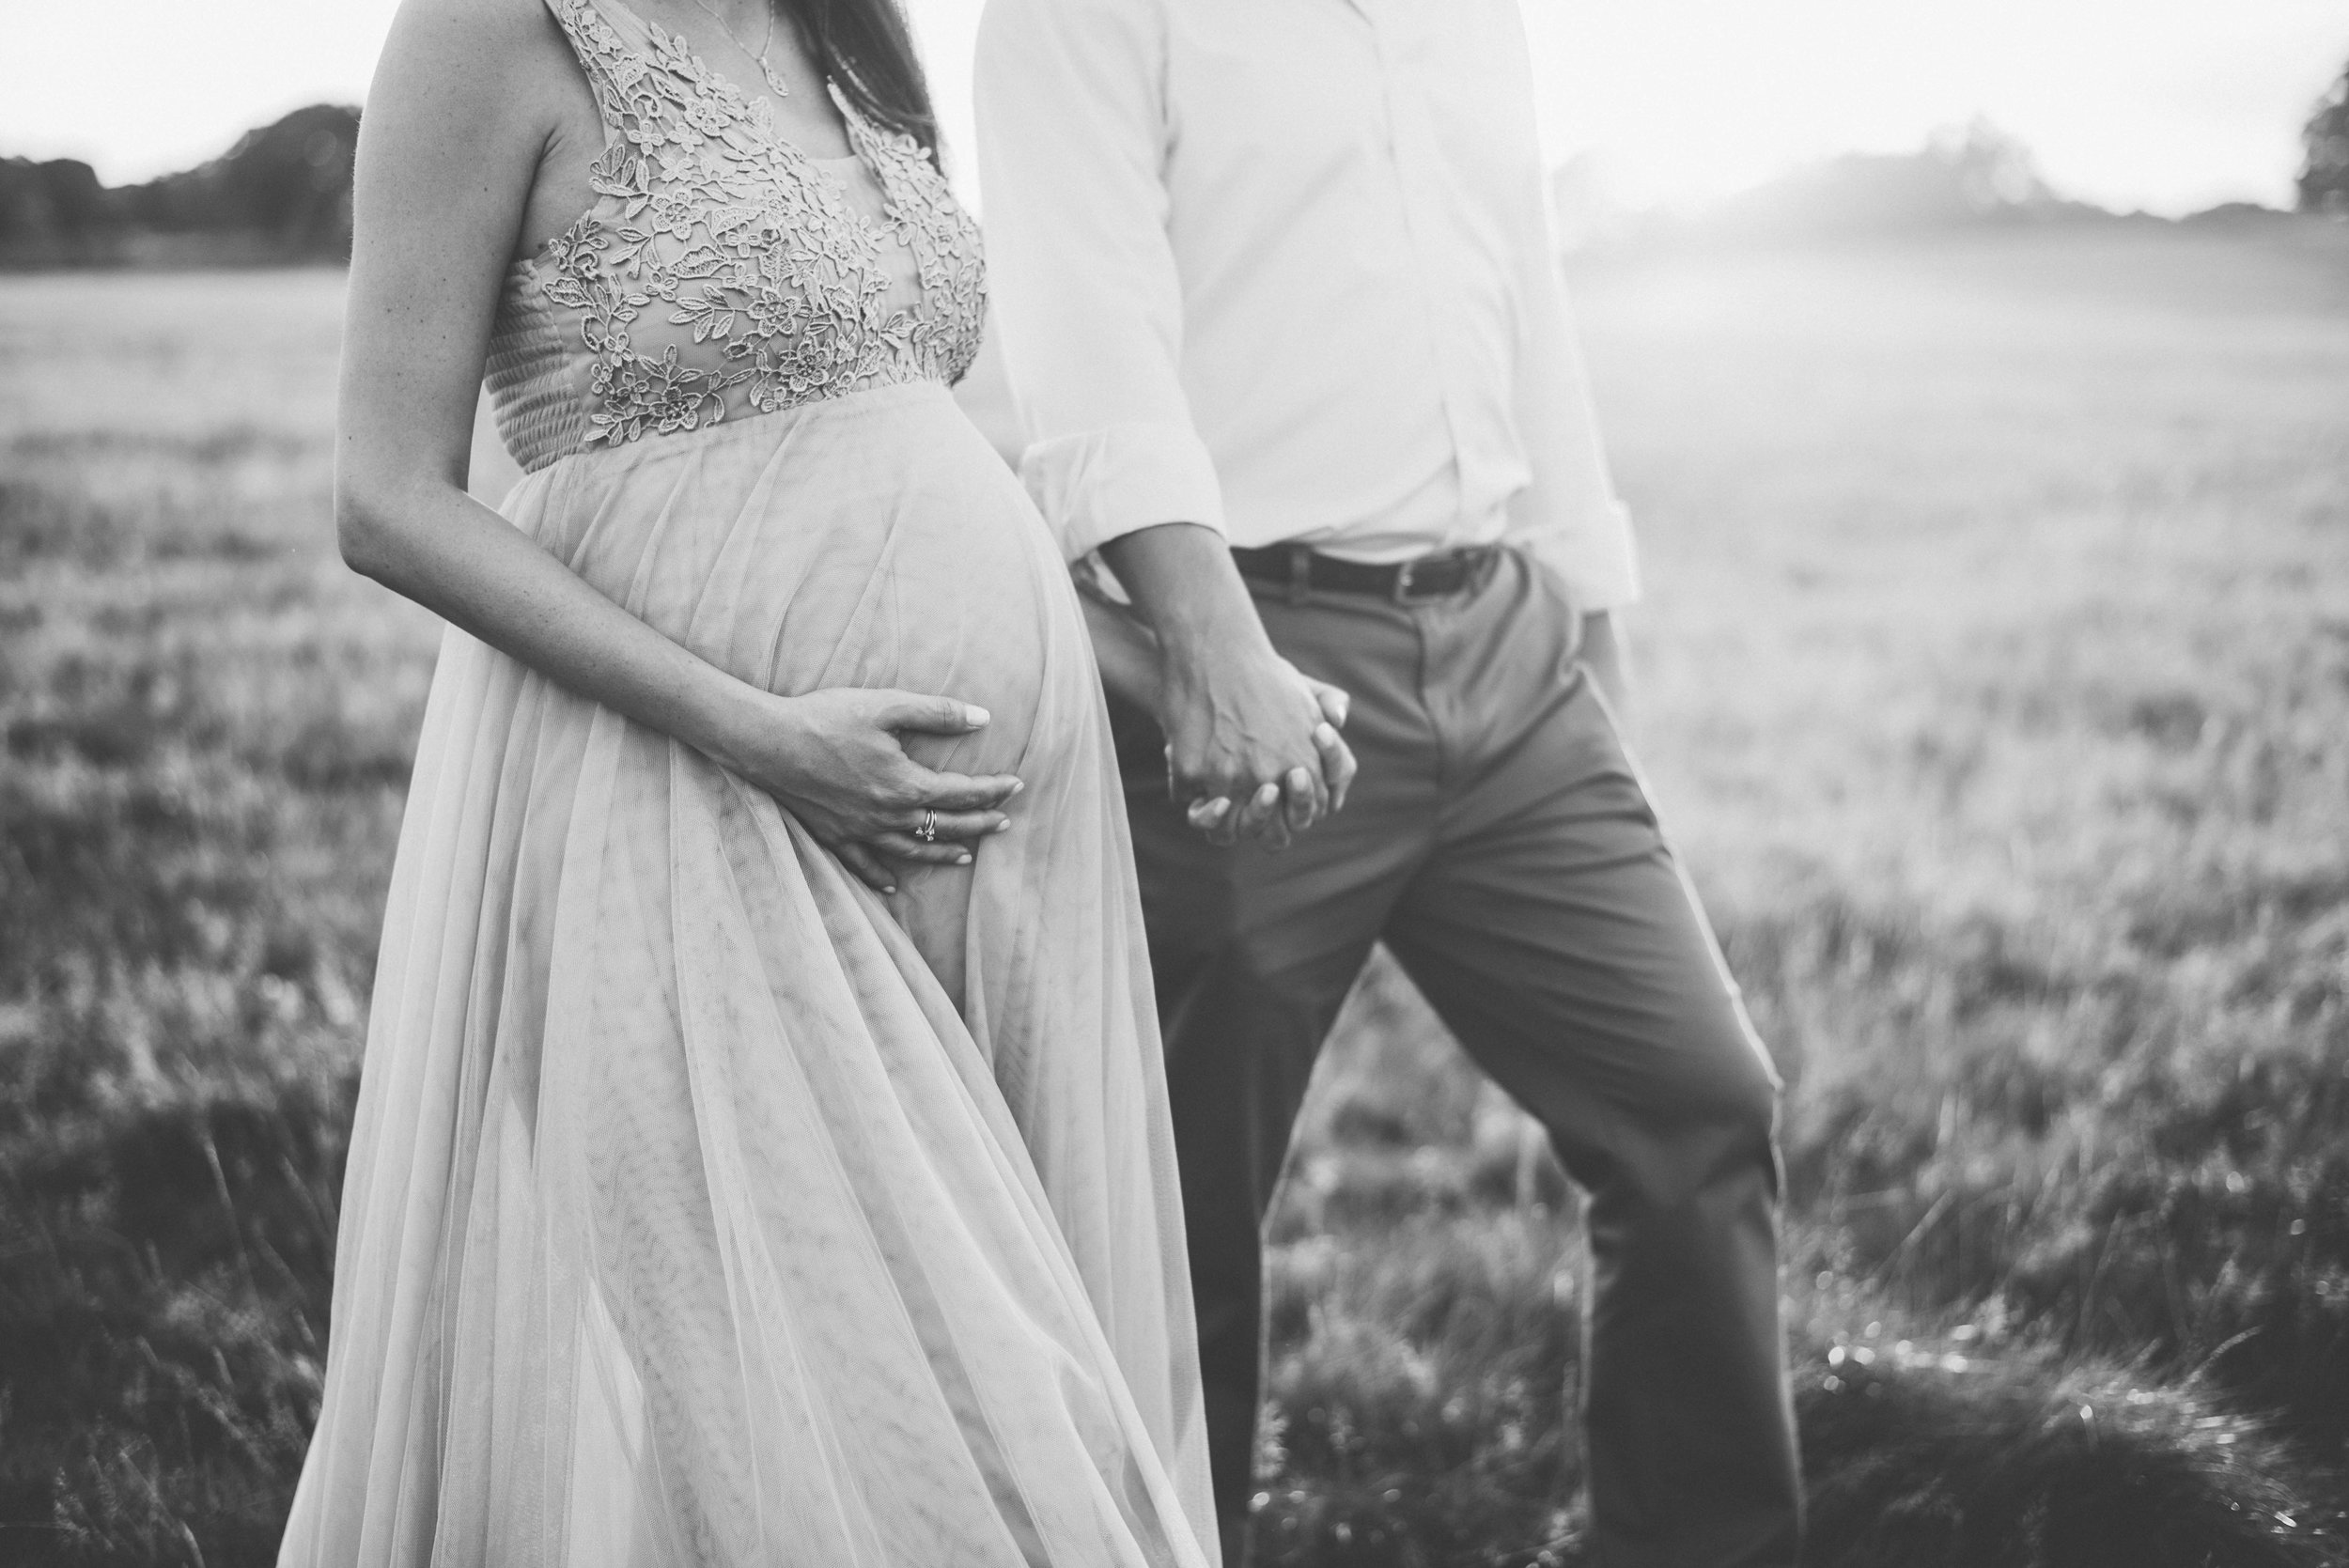 pregnancy photo shoot with partner